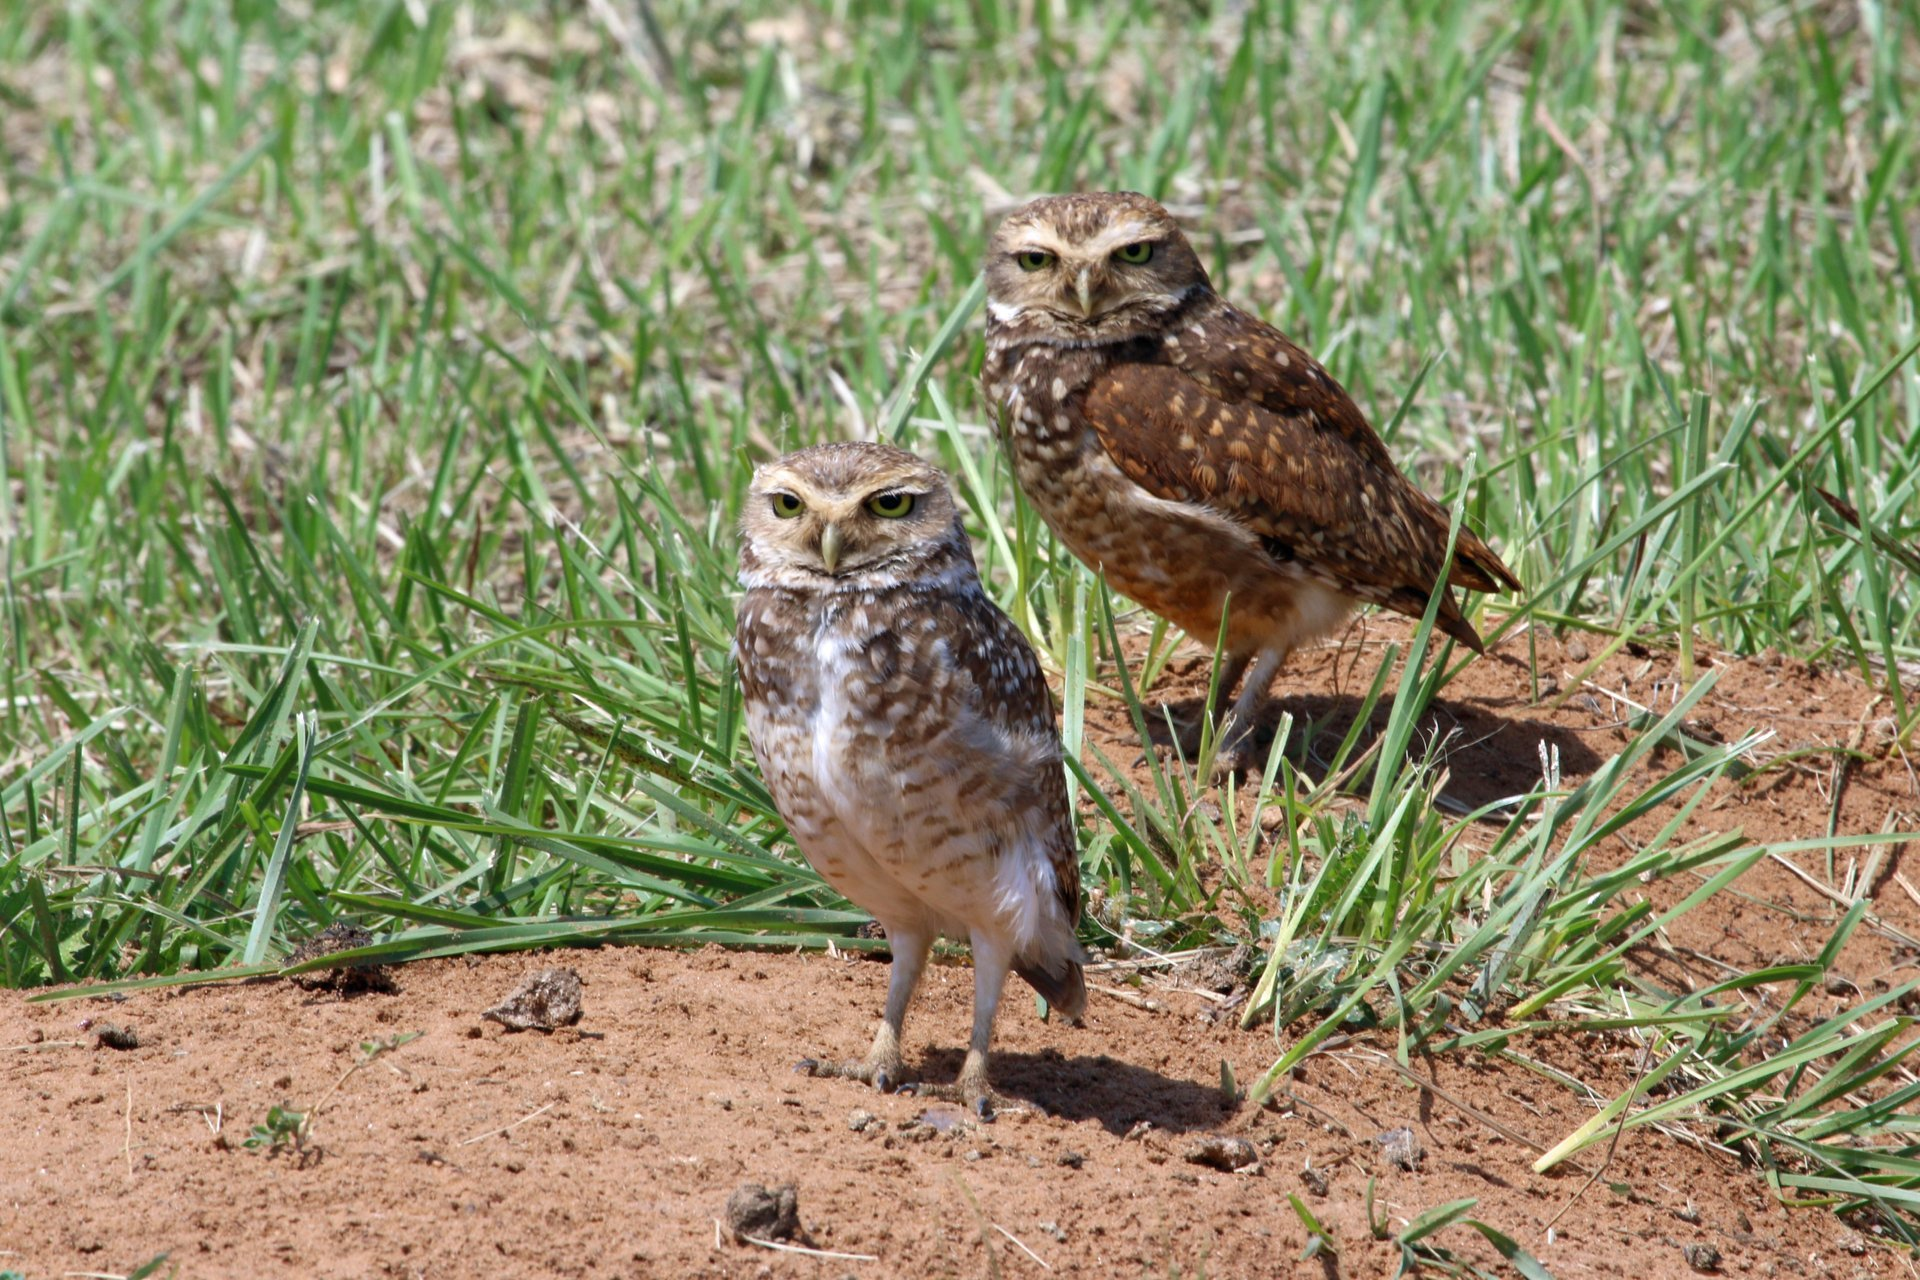 Burrowing Owl Nesting Season in Argentina 2019 - Best Time